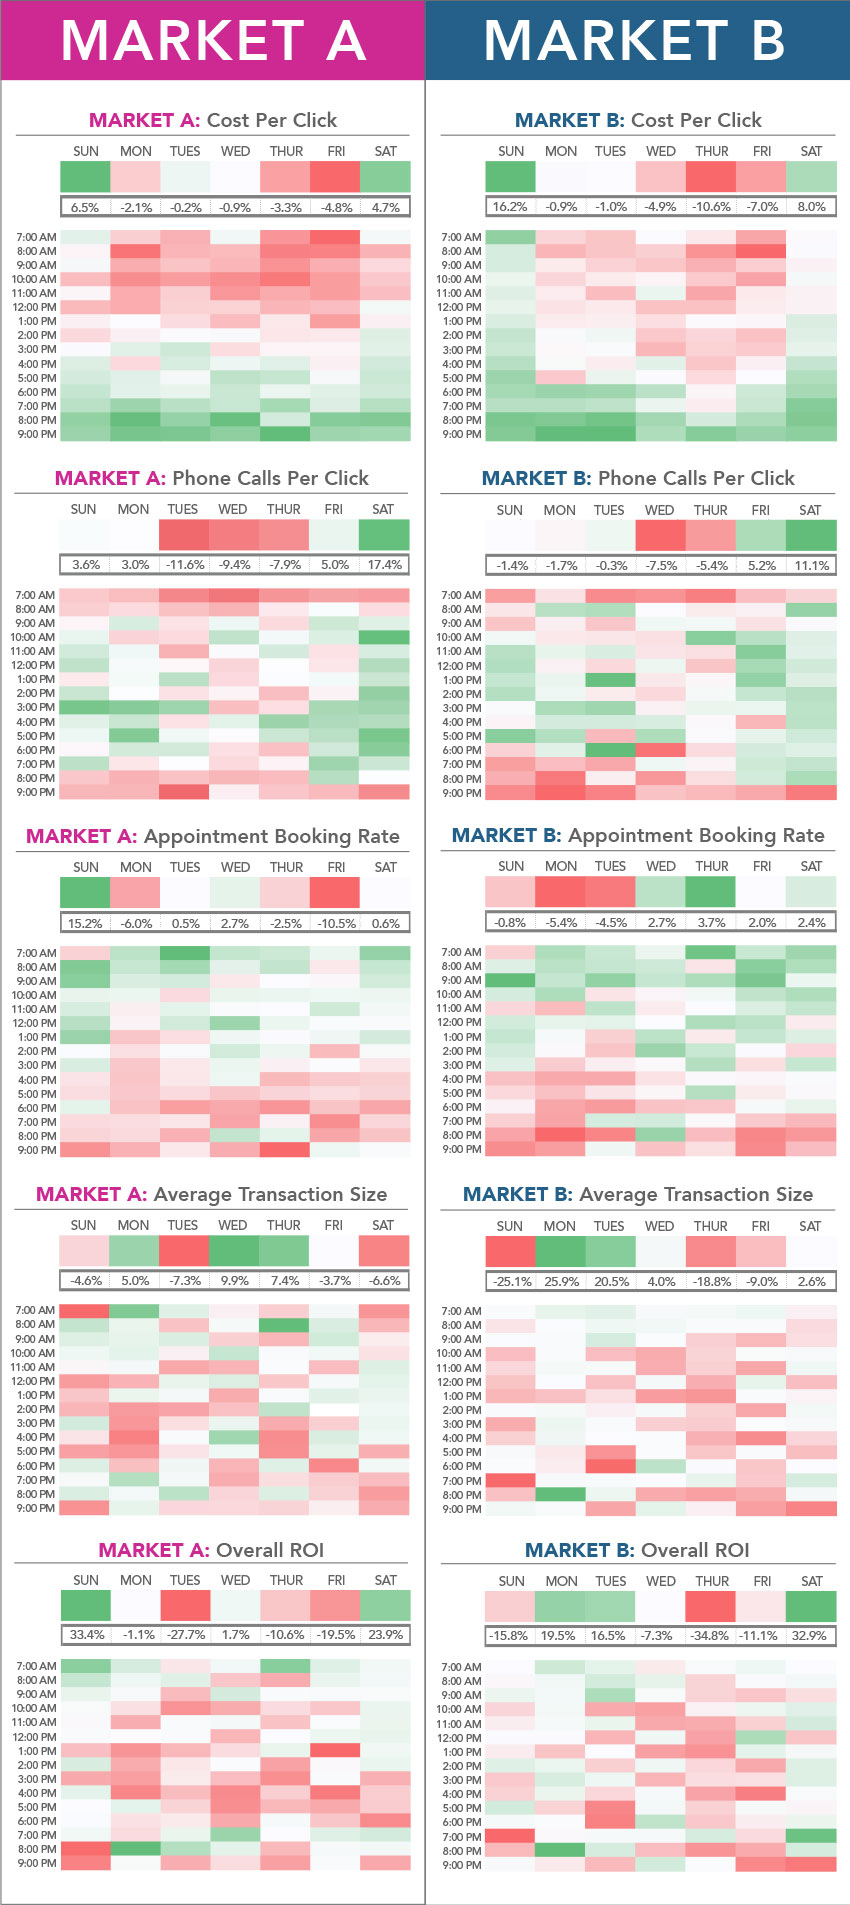 ars case study final market comparison